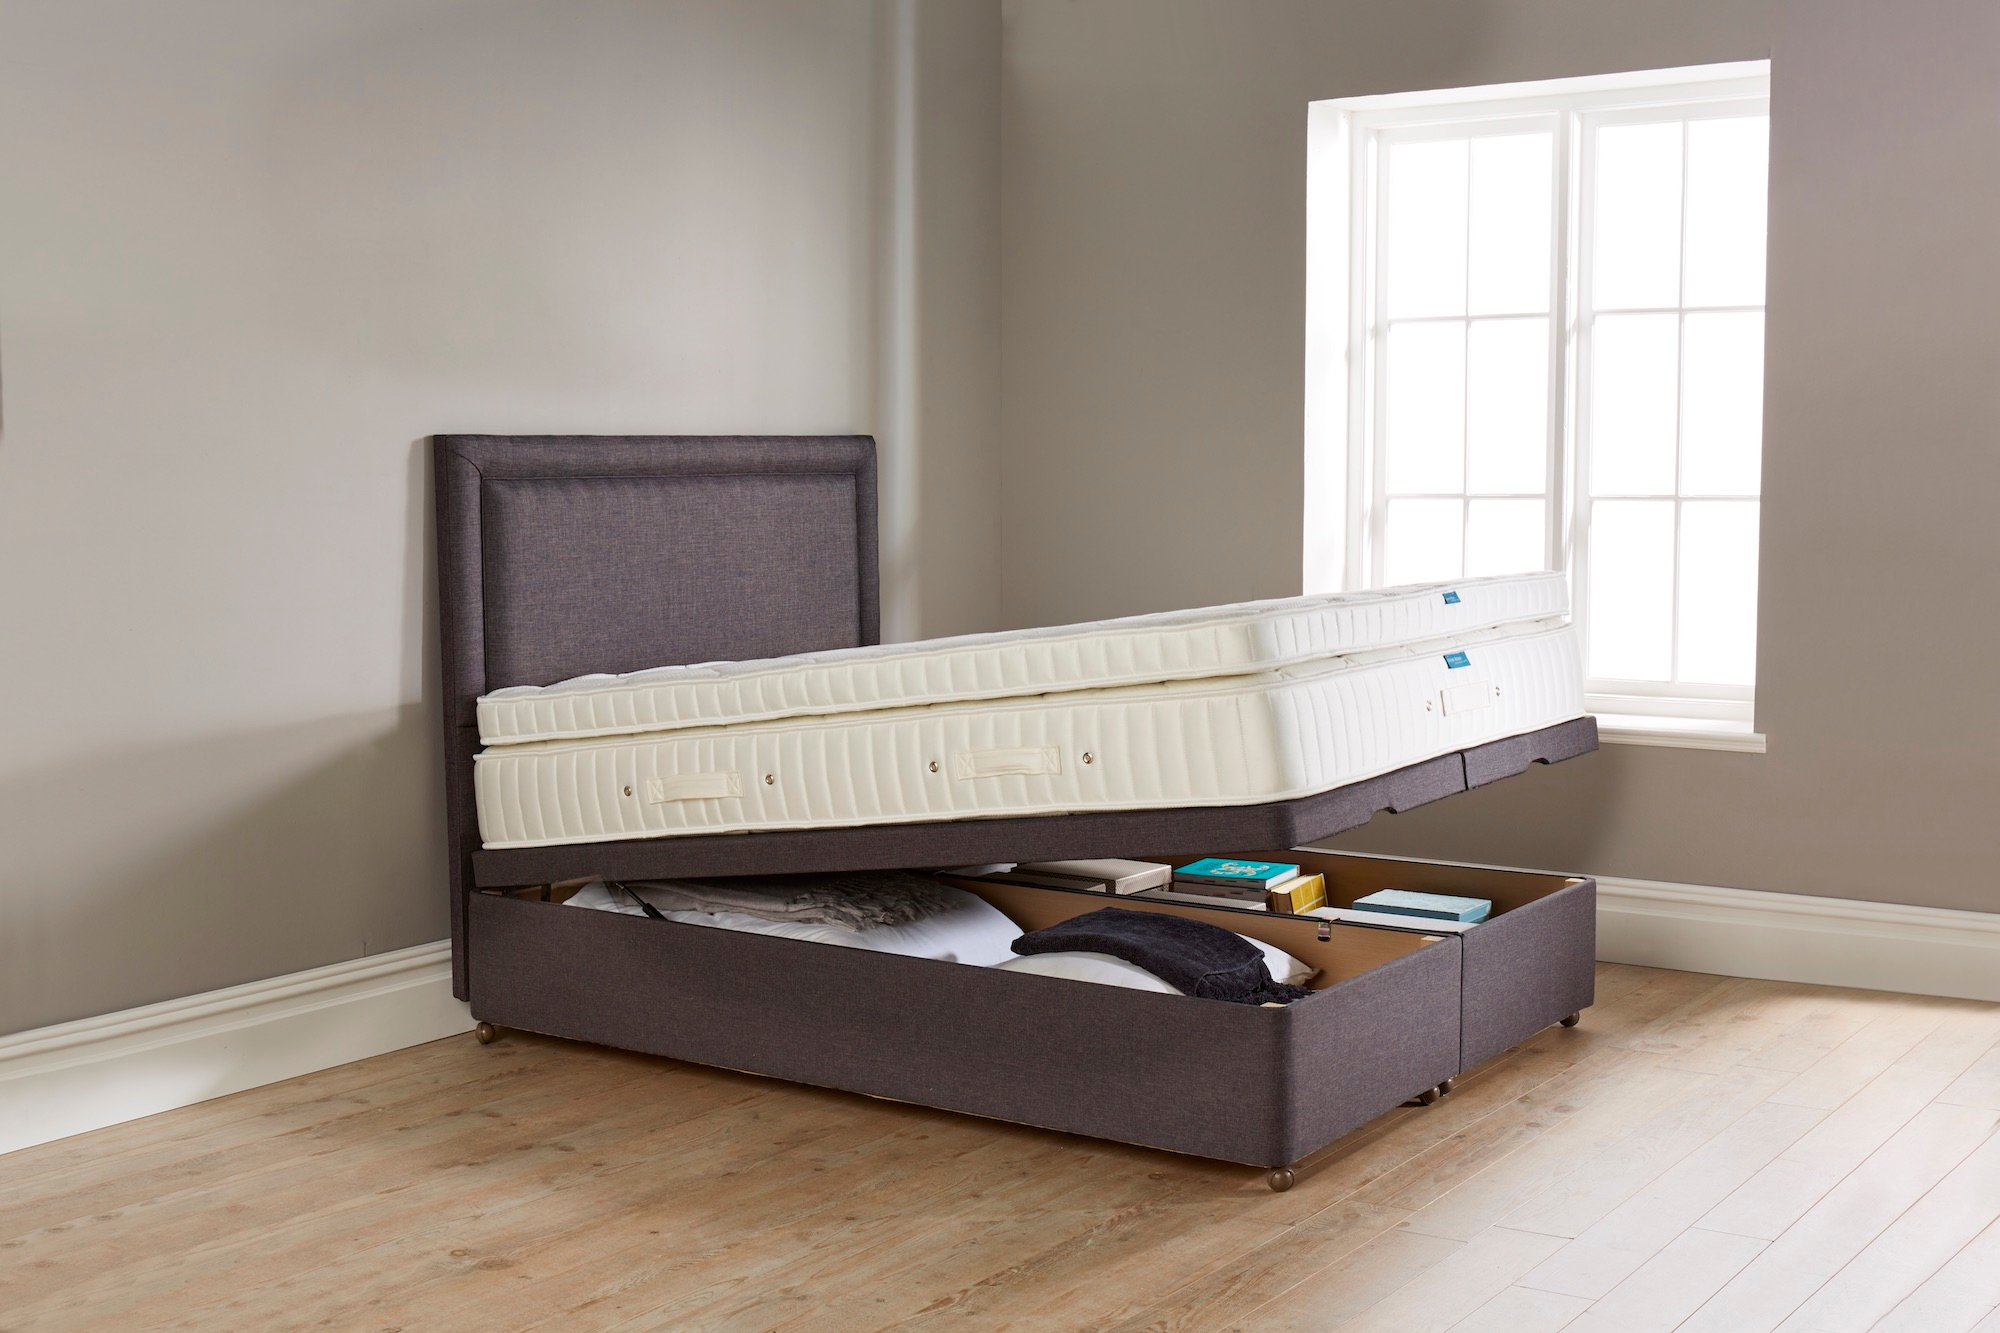 Picture of: Two 2 6 Beds That Can Be Joined Together To Create A King Size Bed Or Be Two Separate Beds For Children Query On Storage